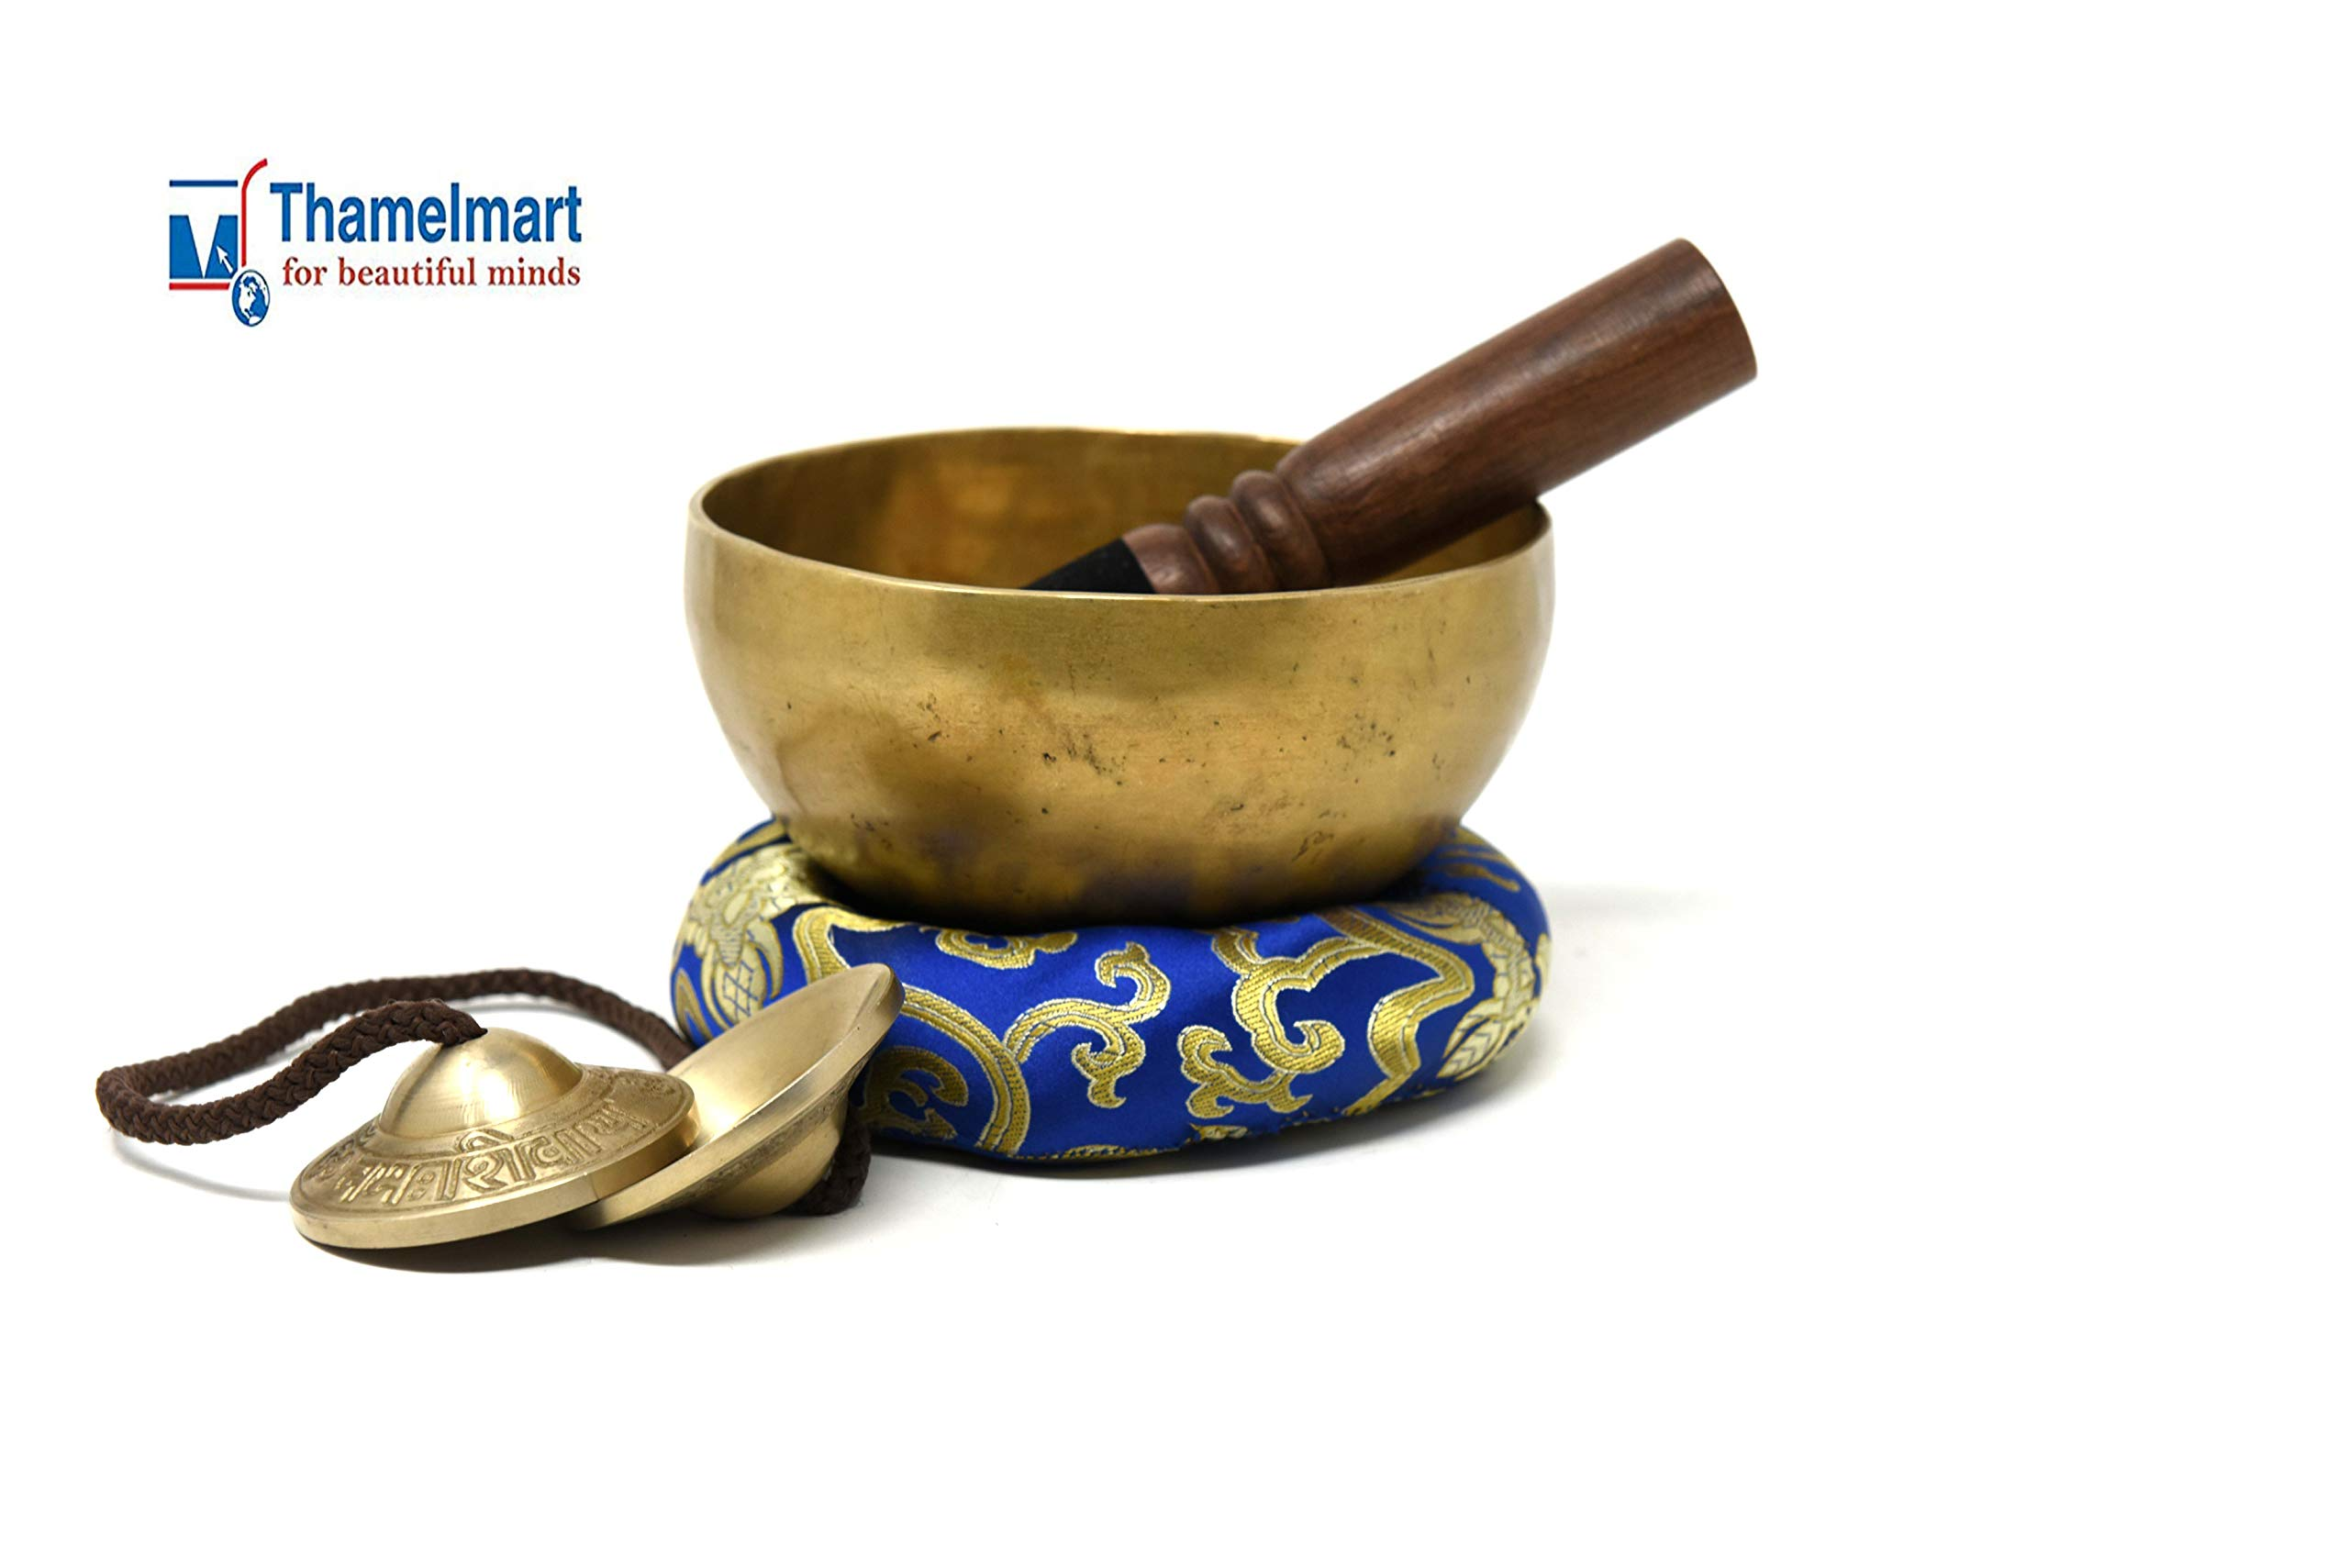 5.5'' Tibetan Singing Bowl for Meditation, Sound Healing, Yoga & Sound Therapy. Made of 7 metals. Silk Cushion, Wooden Mallet, Box & Tingsha included by thamelmart by TM THAMELMART FOR BEAUTIFUL MINDS